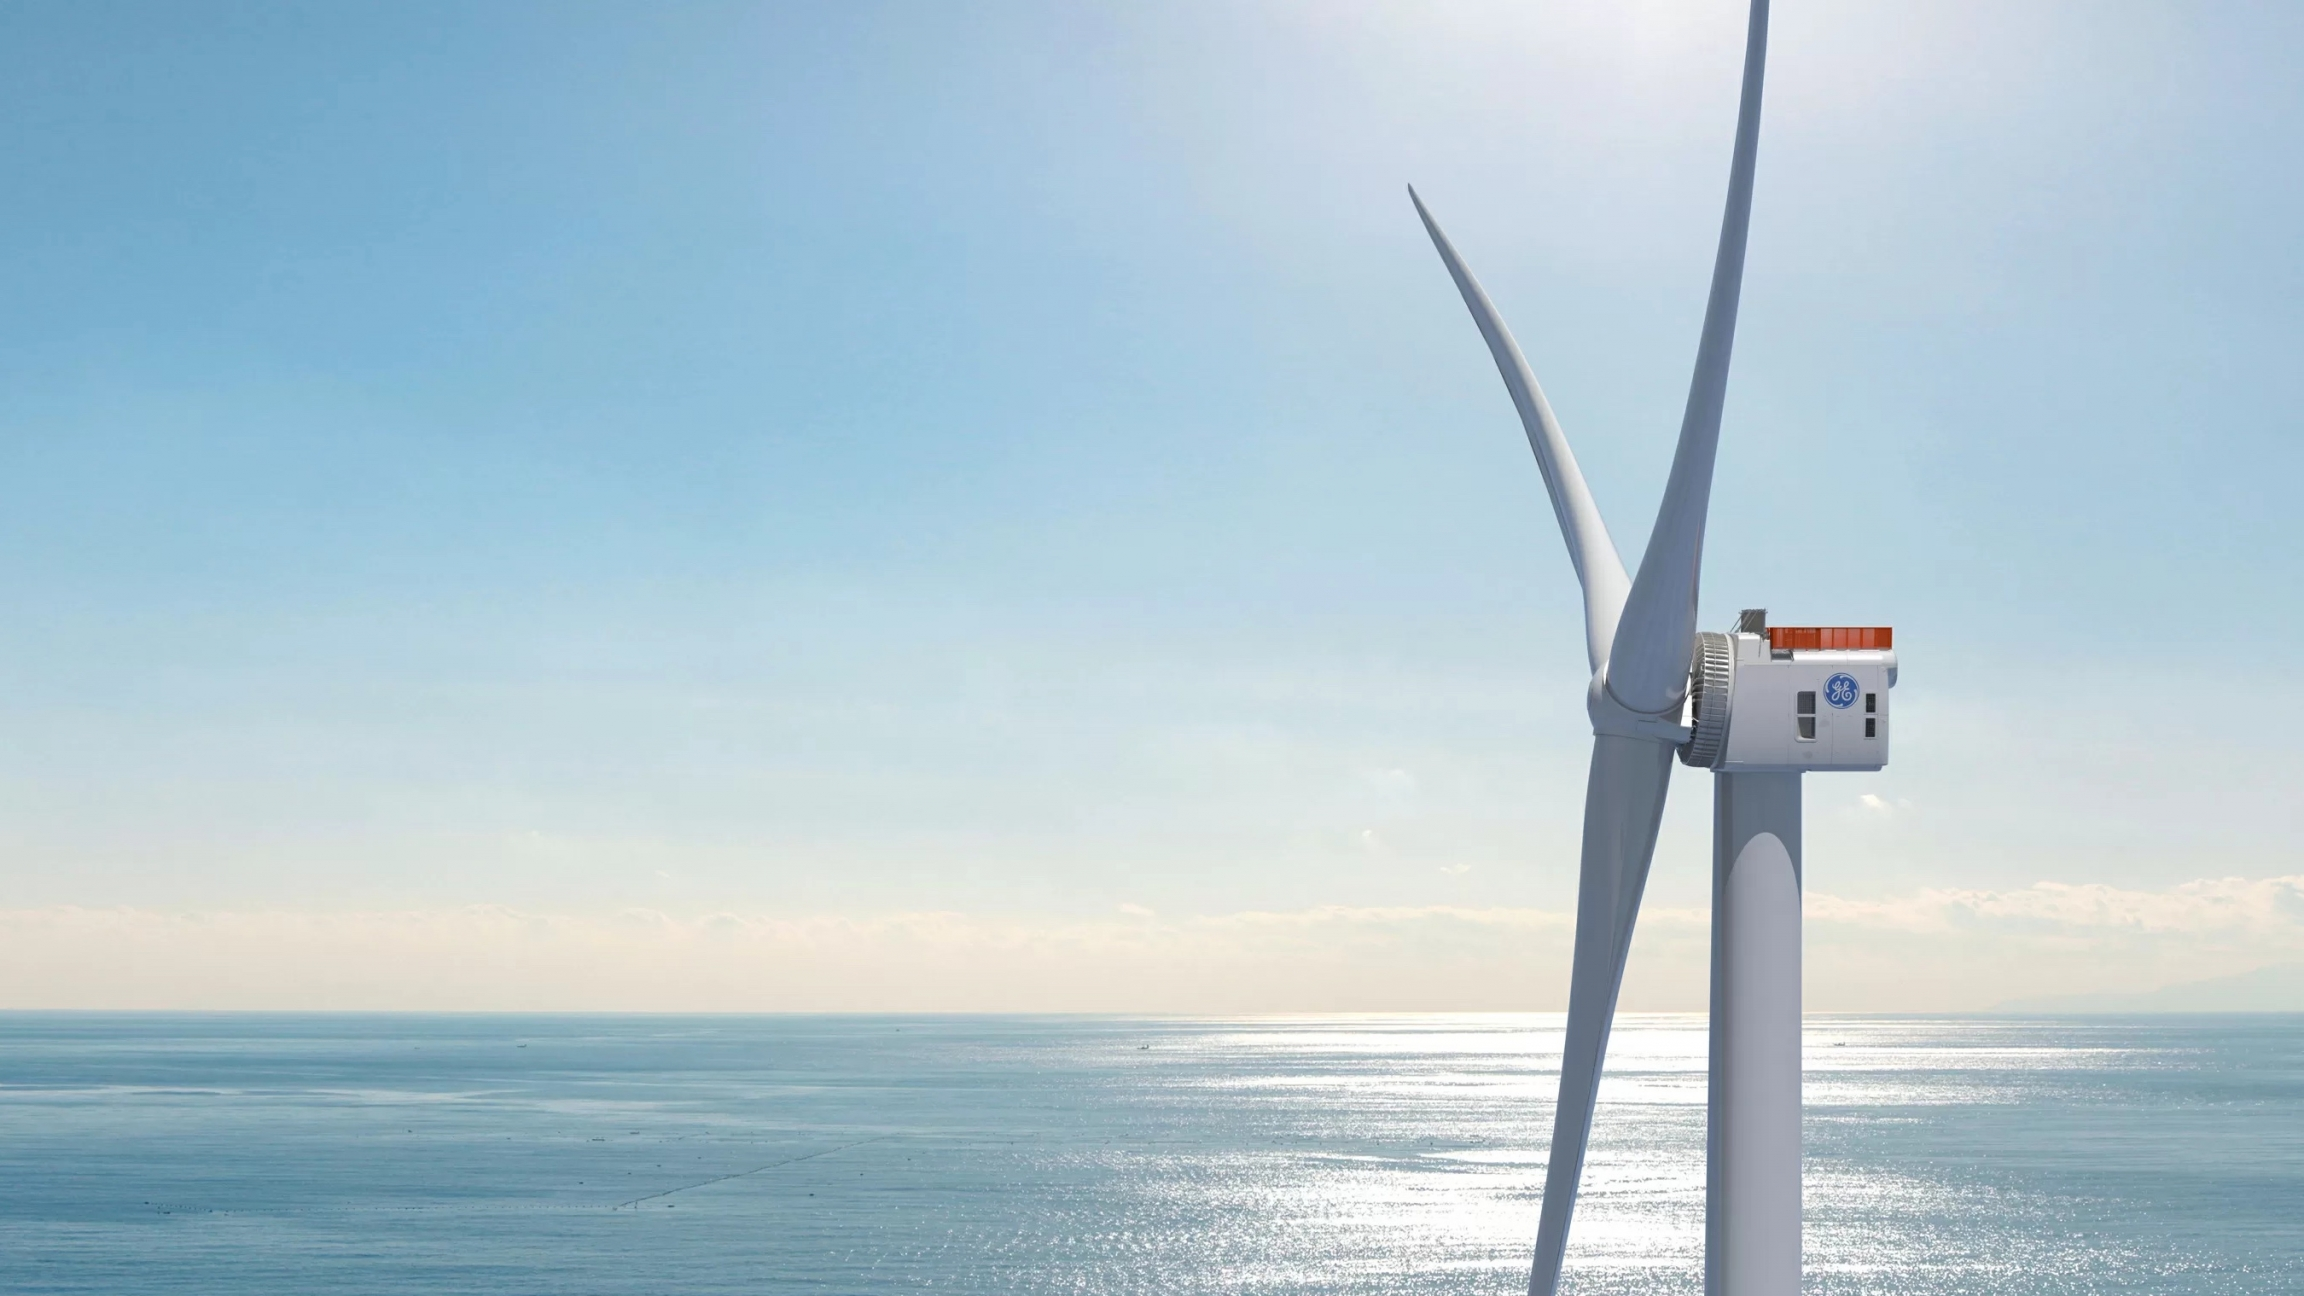 Haliade-X wind turbines — nearly the size of the Eiffel Tower — are a game changer for the global offshore wind industry. A single turbine can power over 10,000 homes at competitive rates.